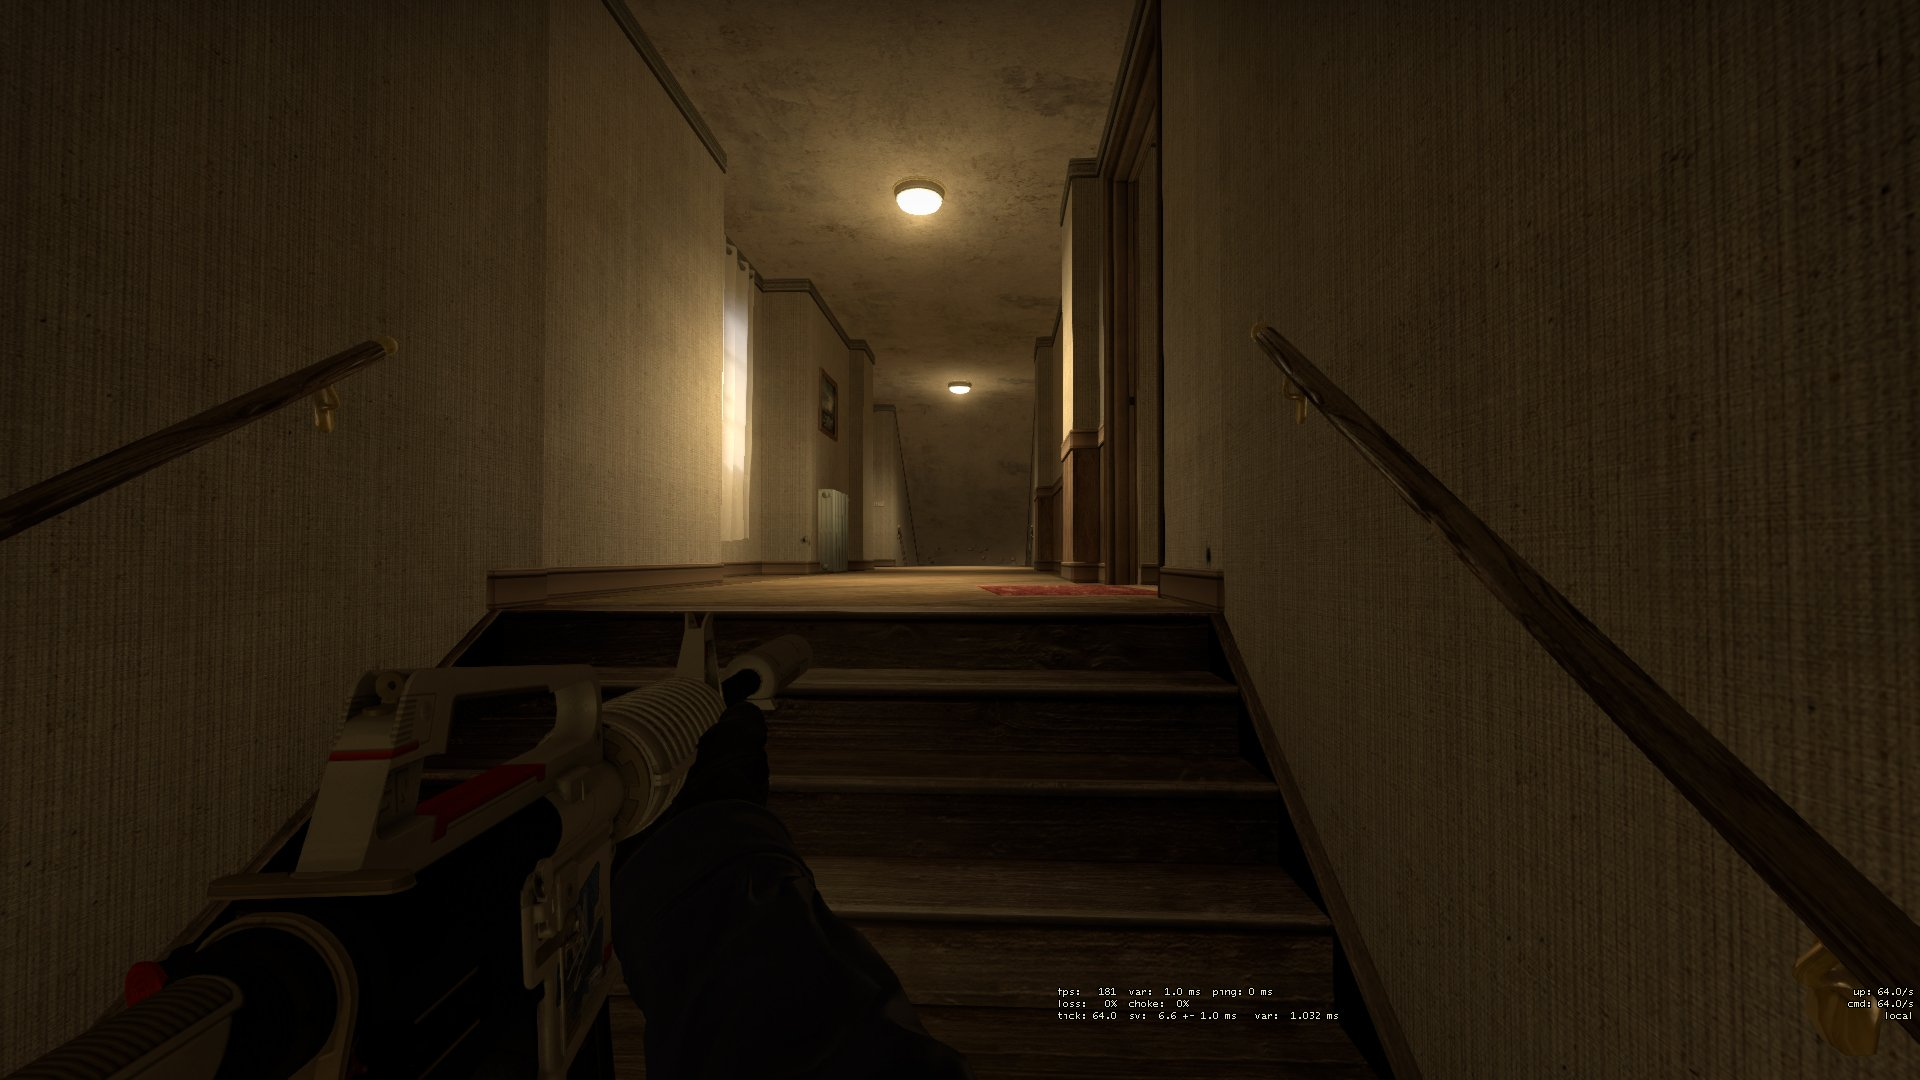 Holding boiler at the top of the stairs, ready to headshot any terrorists.